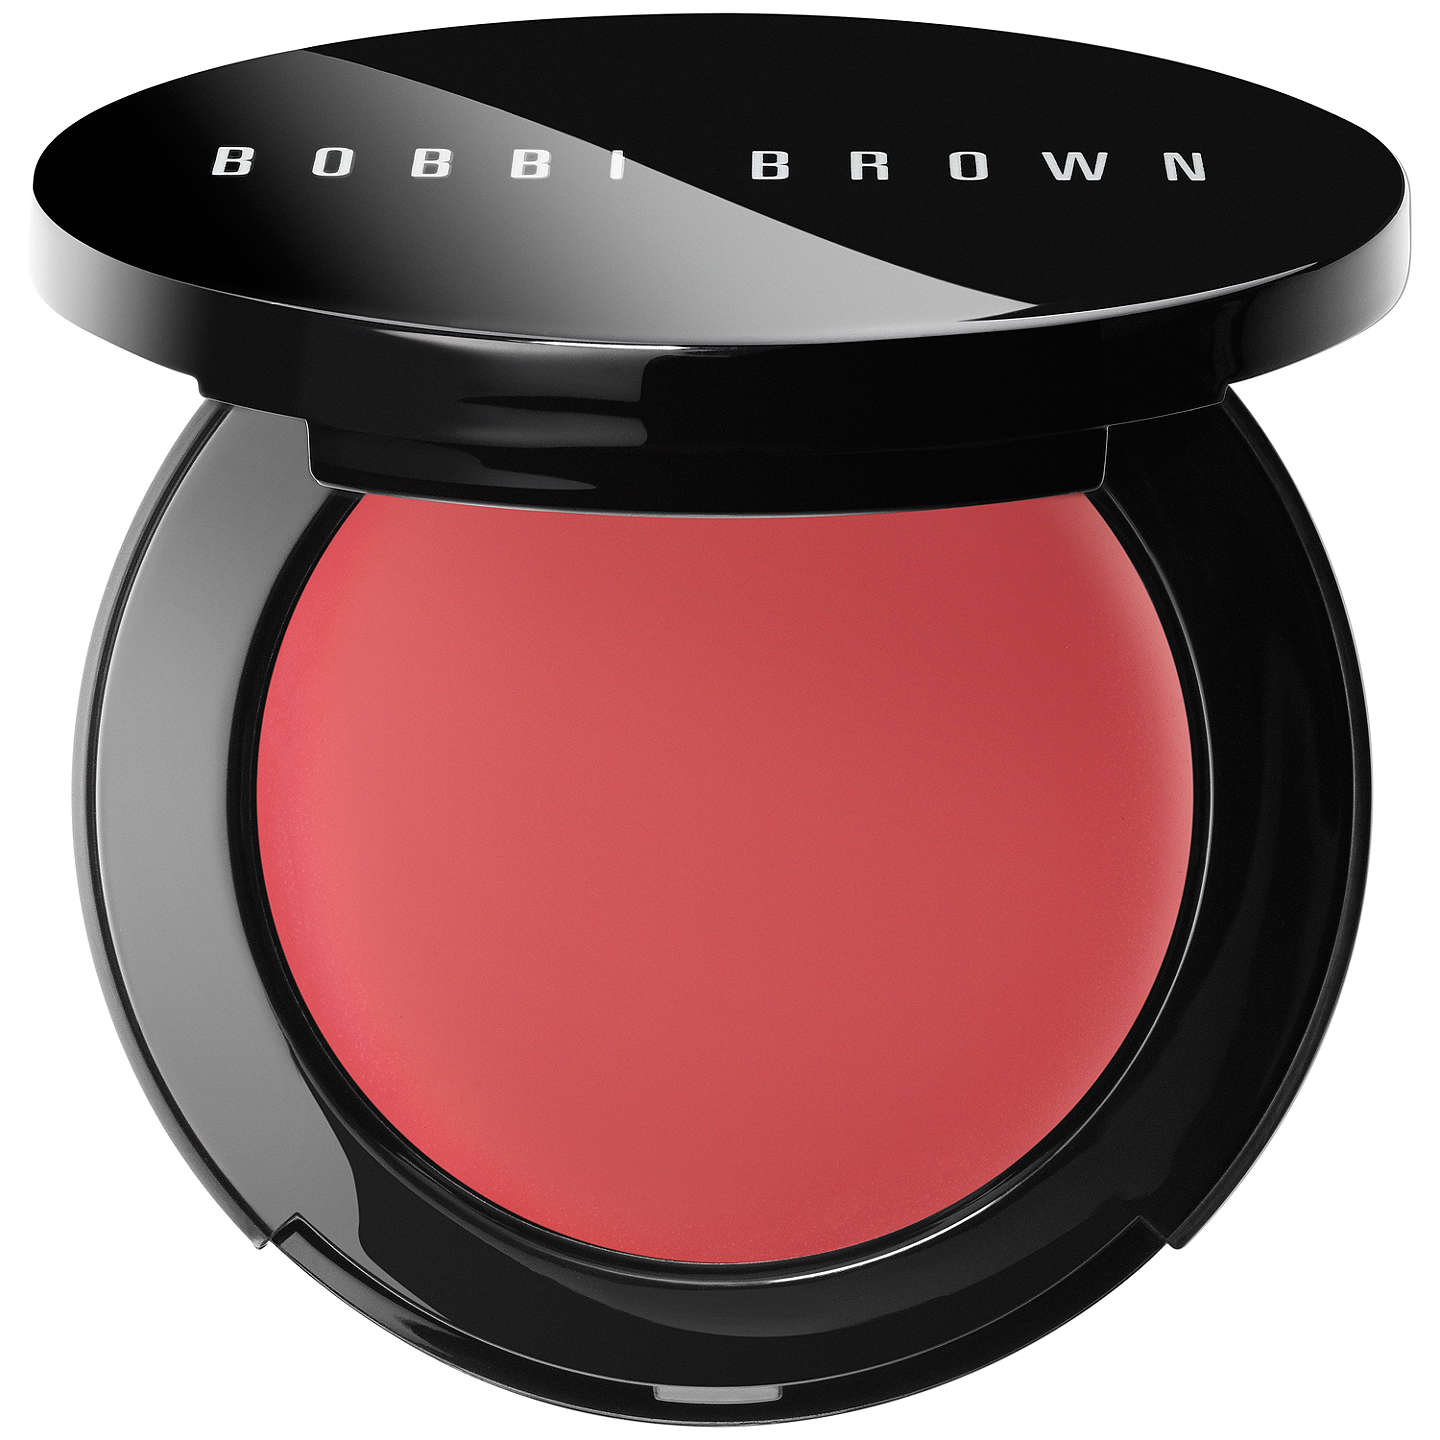 BuyBobbi Brown Pot Rouge for Lips and Cheeks, Maui Online at johnlewis.com